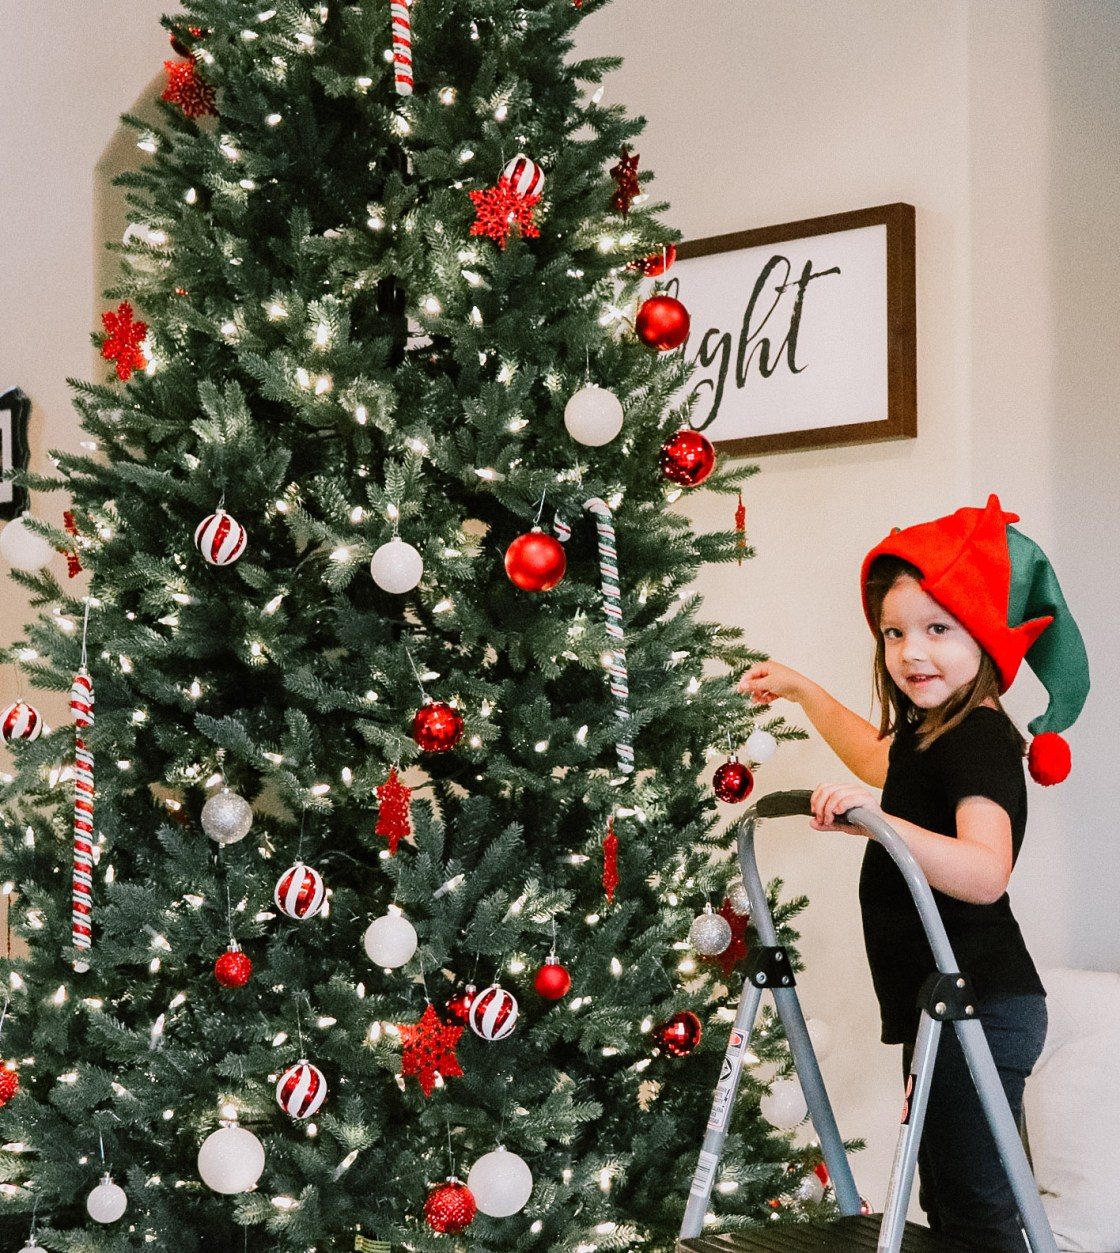 One of my favorite things to do during the holiday season is to give back to others. Here are 5 super easy ways to give back this holiday season!